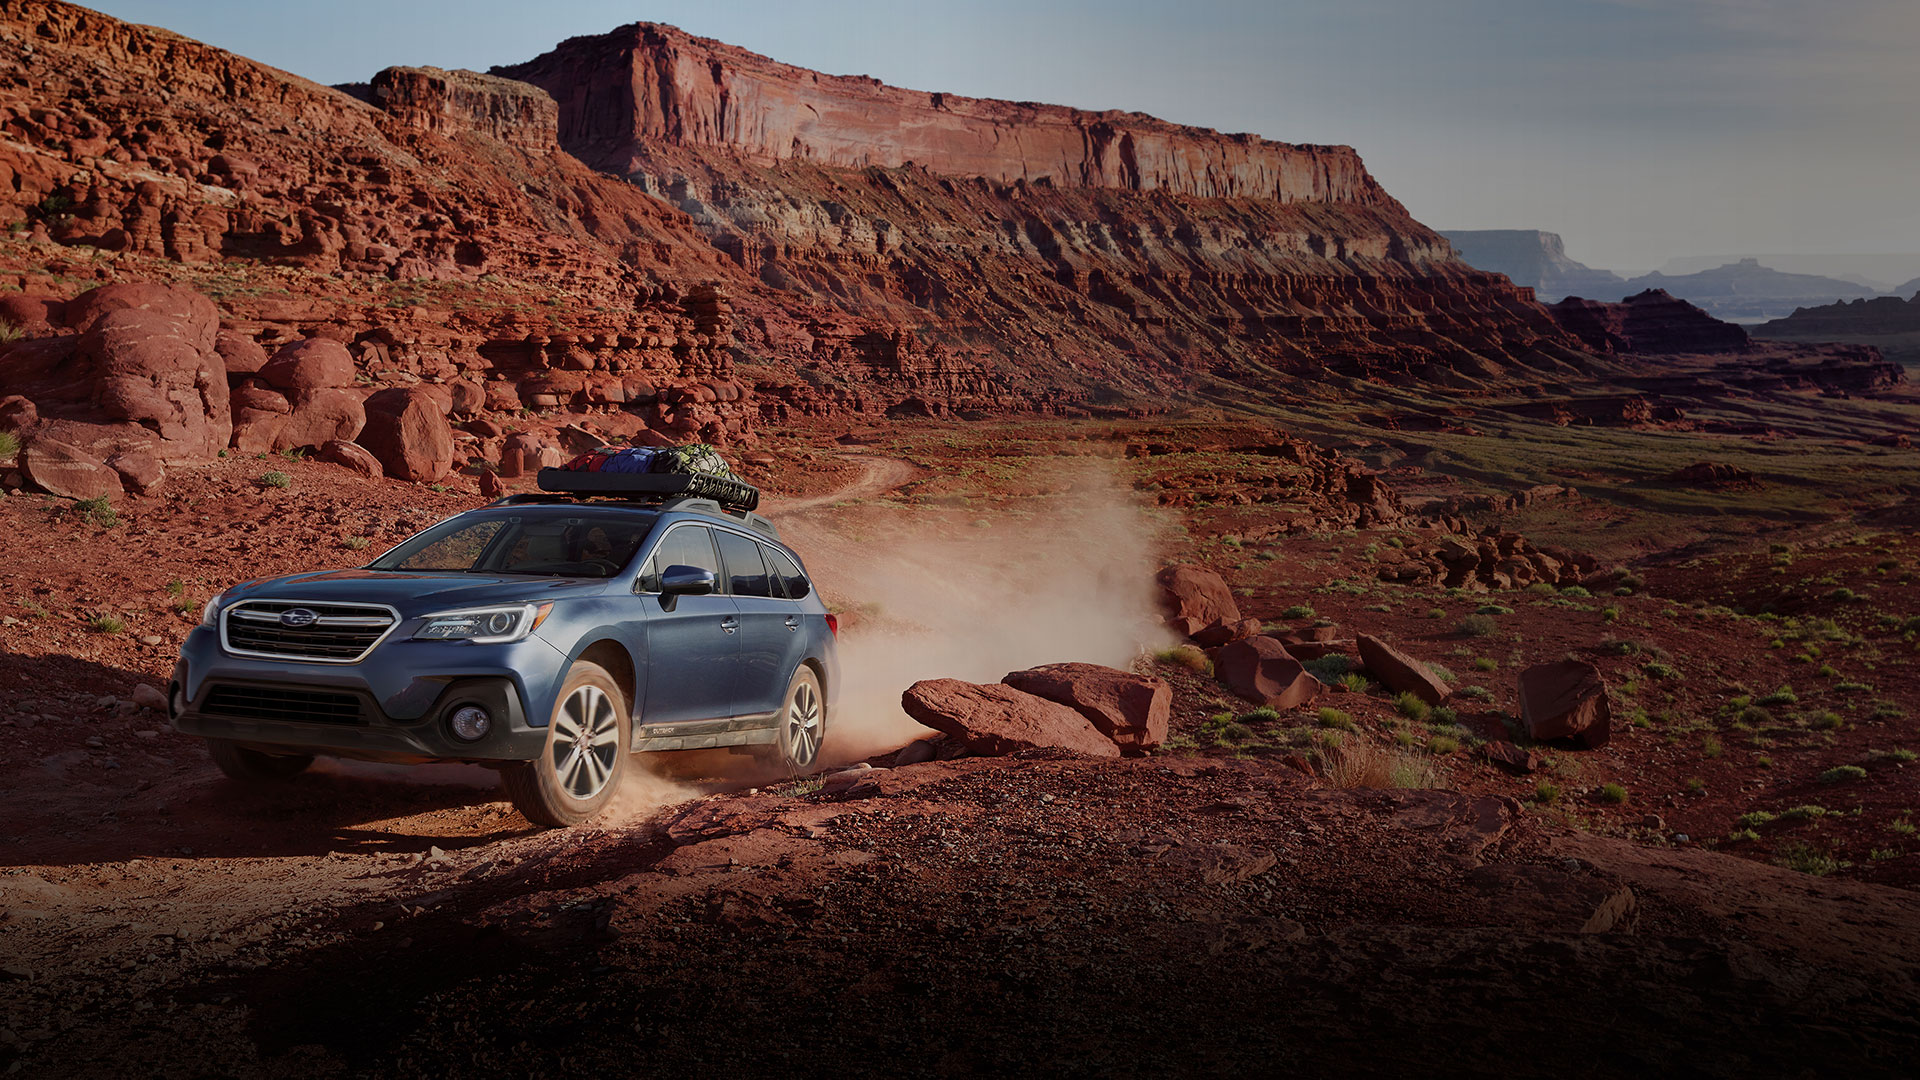 Adventures often take you to remote places. In the Outback, you'll come prepared. With 8.7 inches of ground clearance and the proven Subaru Symmetrical All-Wheel Drive system, little can block you from getting there. Even the roughest terrain poses no threat. Simply activate X-MODE<sup>&reg;</sup> with Hill Descent Control for even more control and confidence. And with up to 32 miles per gallon<sup>1</sup>, the responsive SUBARU BOXER<sup>&reg;</sup> engine has the efficiency to help you go farther, and the reliability to go the distance.